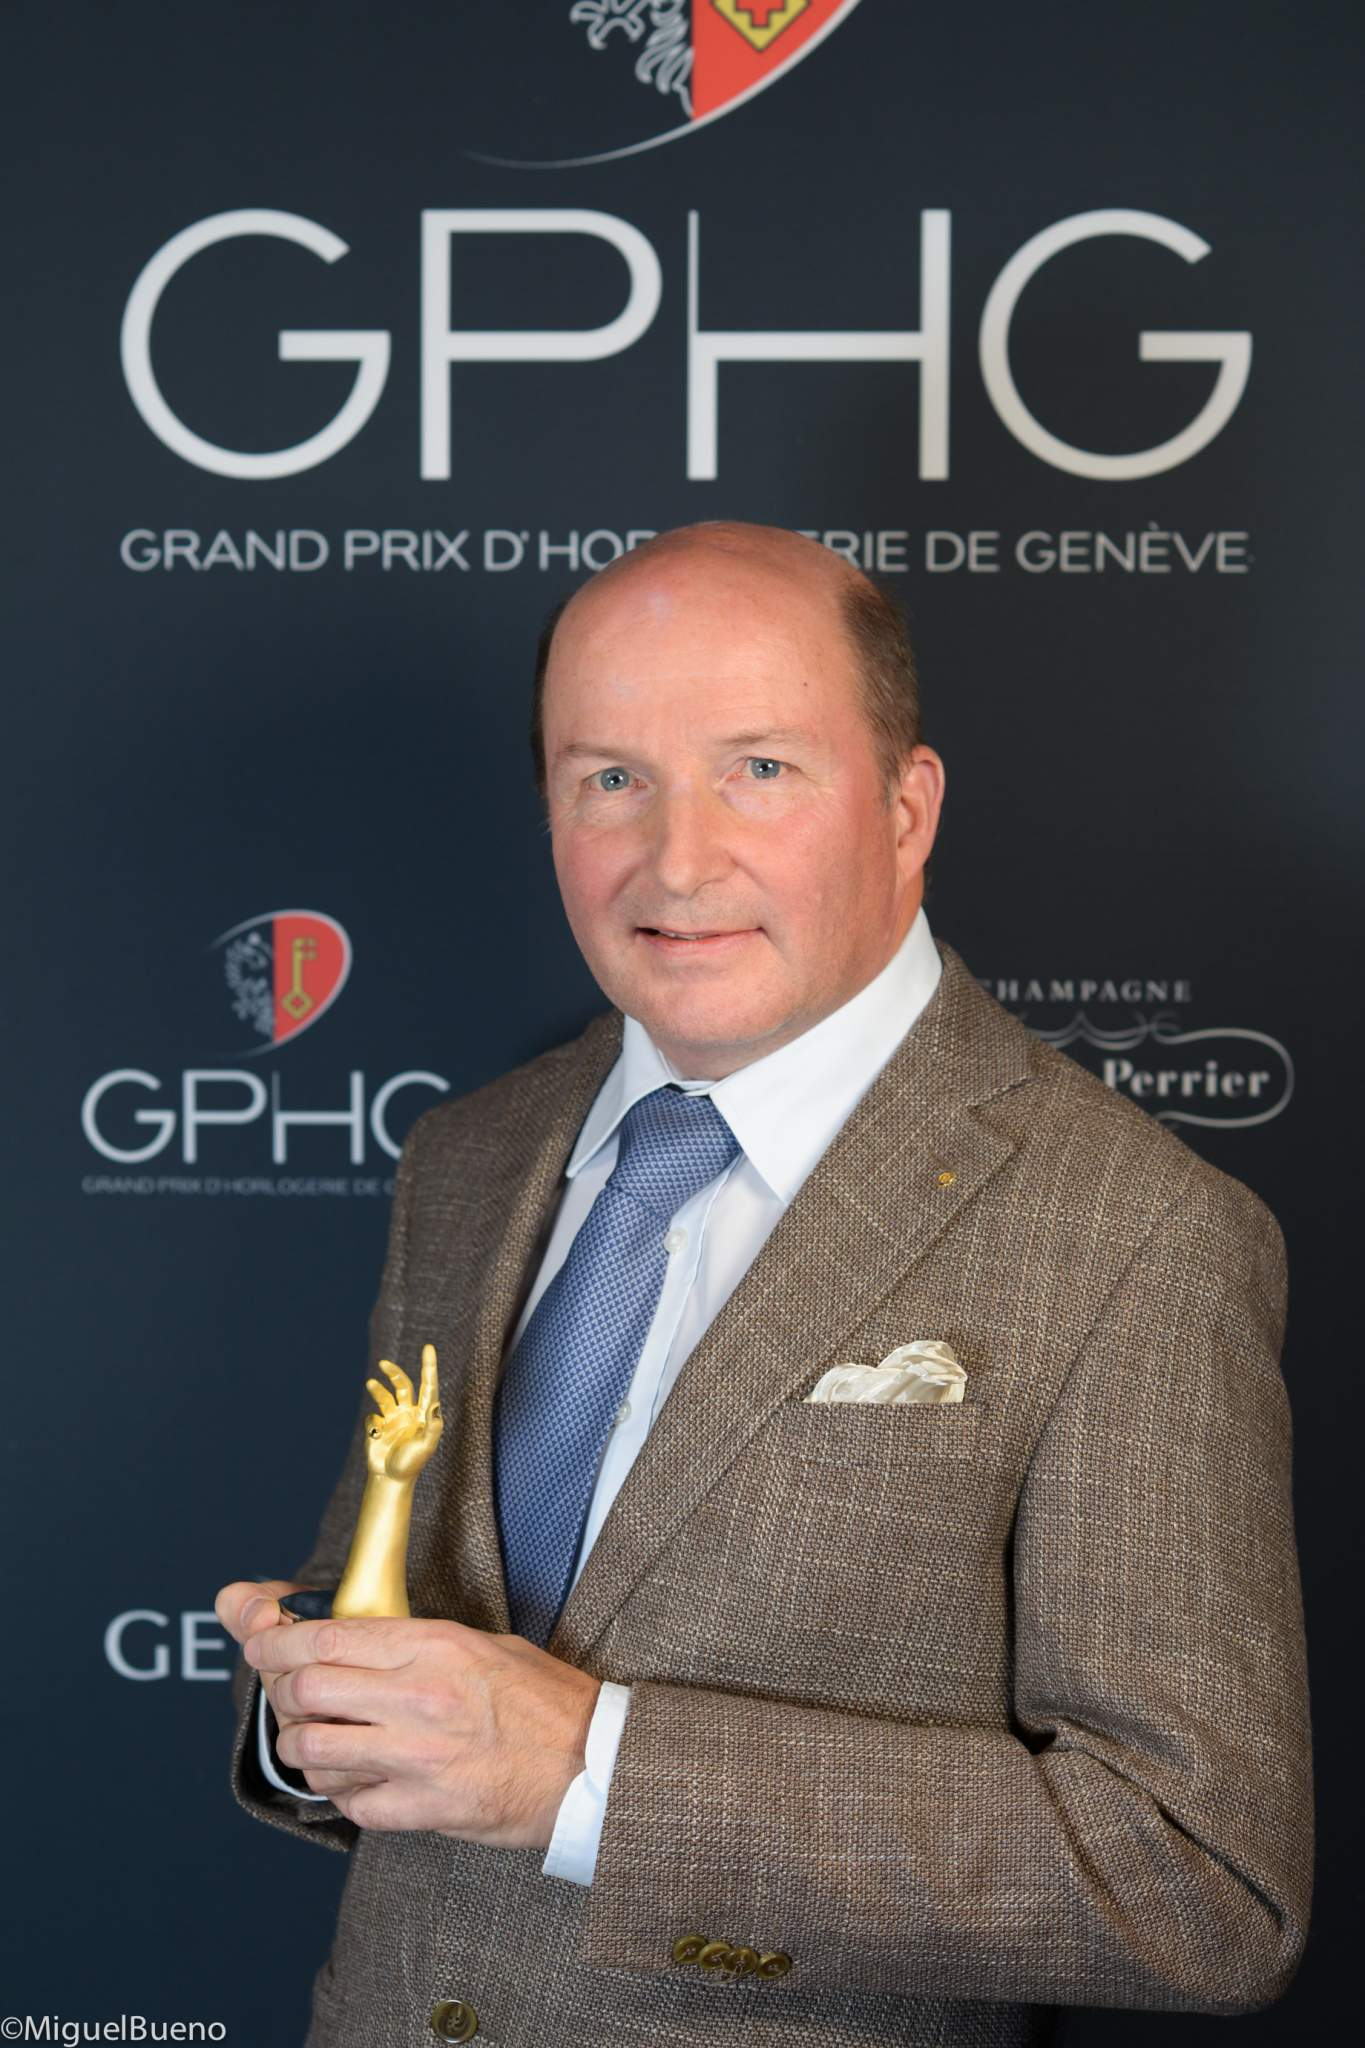 Owner and watchmaker, winner of the Men's Watch Prize 2019